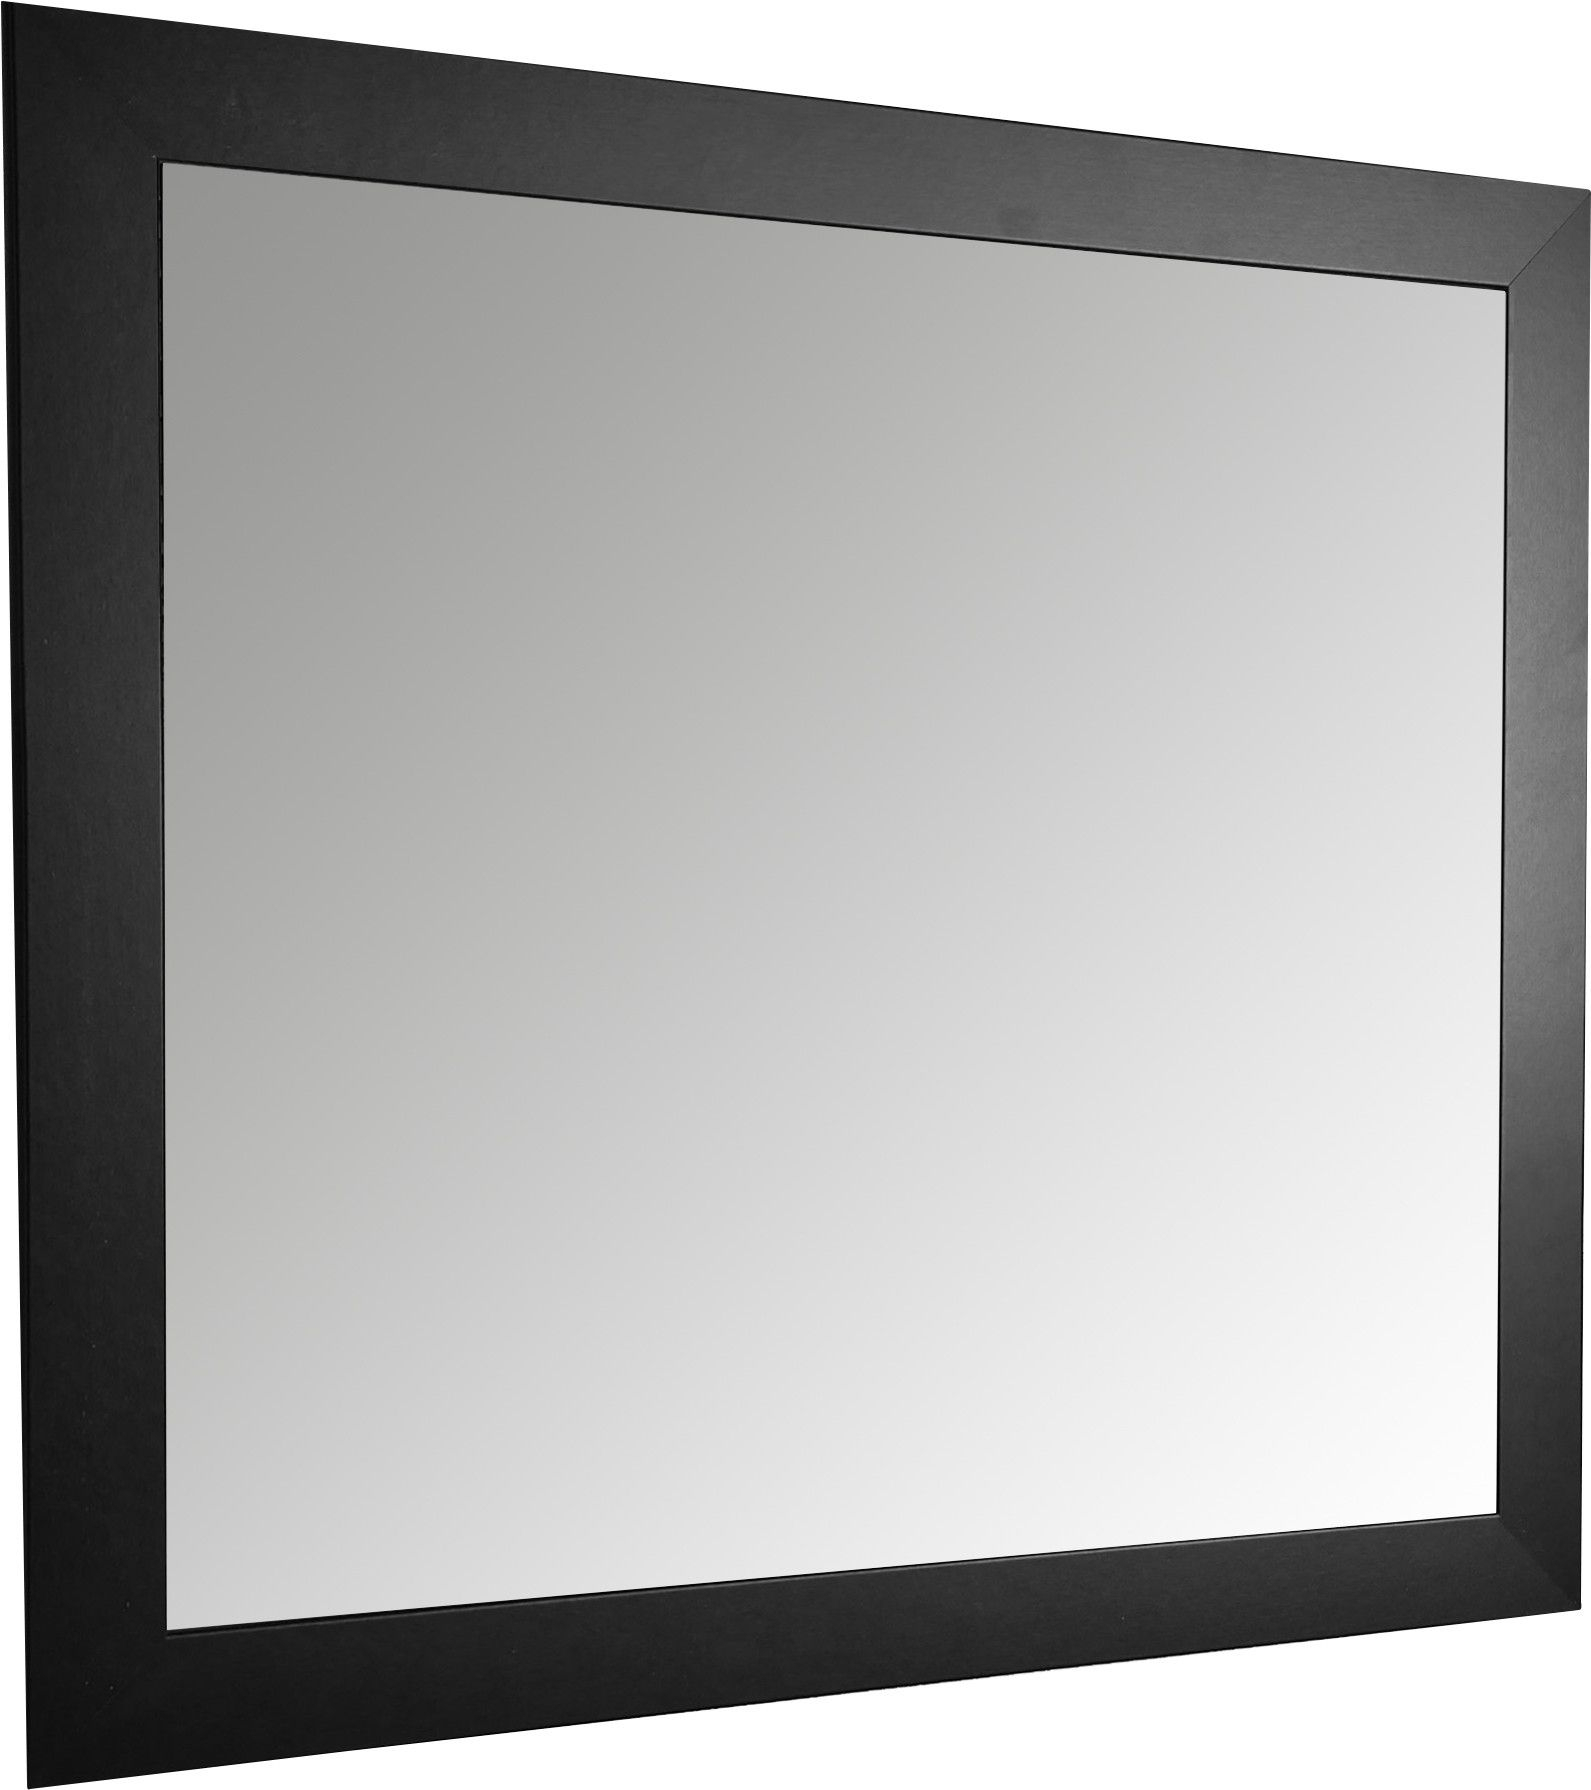 American Made Accent Wall Mirror | Products In 2019 | Mirror Pertaining To American Made Accent Wall Mirrors (View 6 of 20)